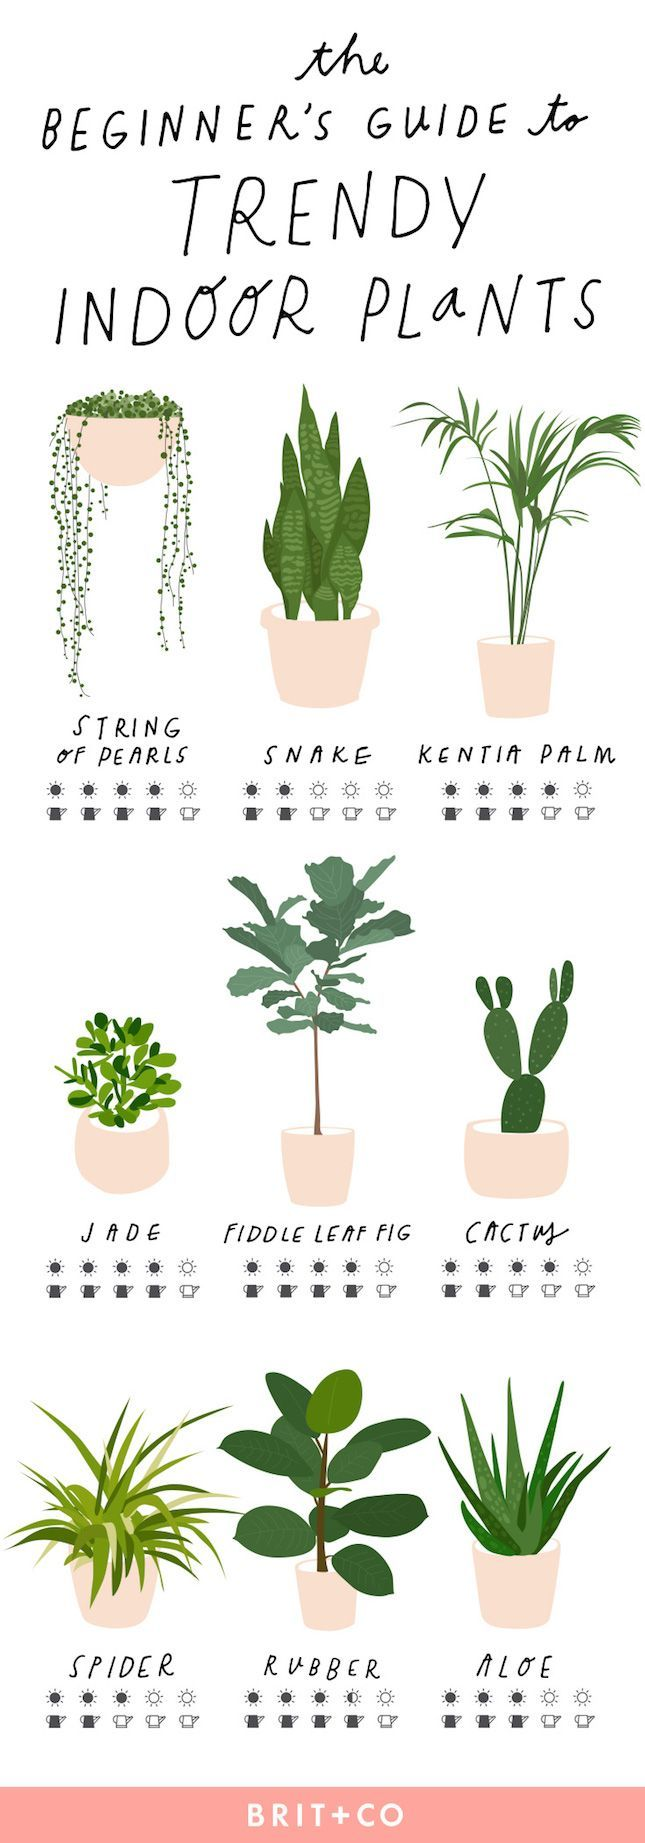 the beginners guide to trendy indoor plants